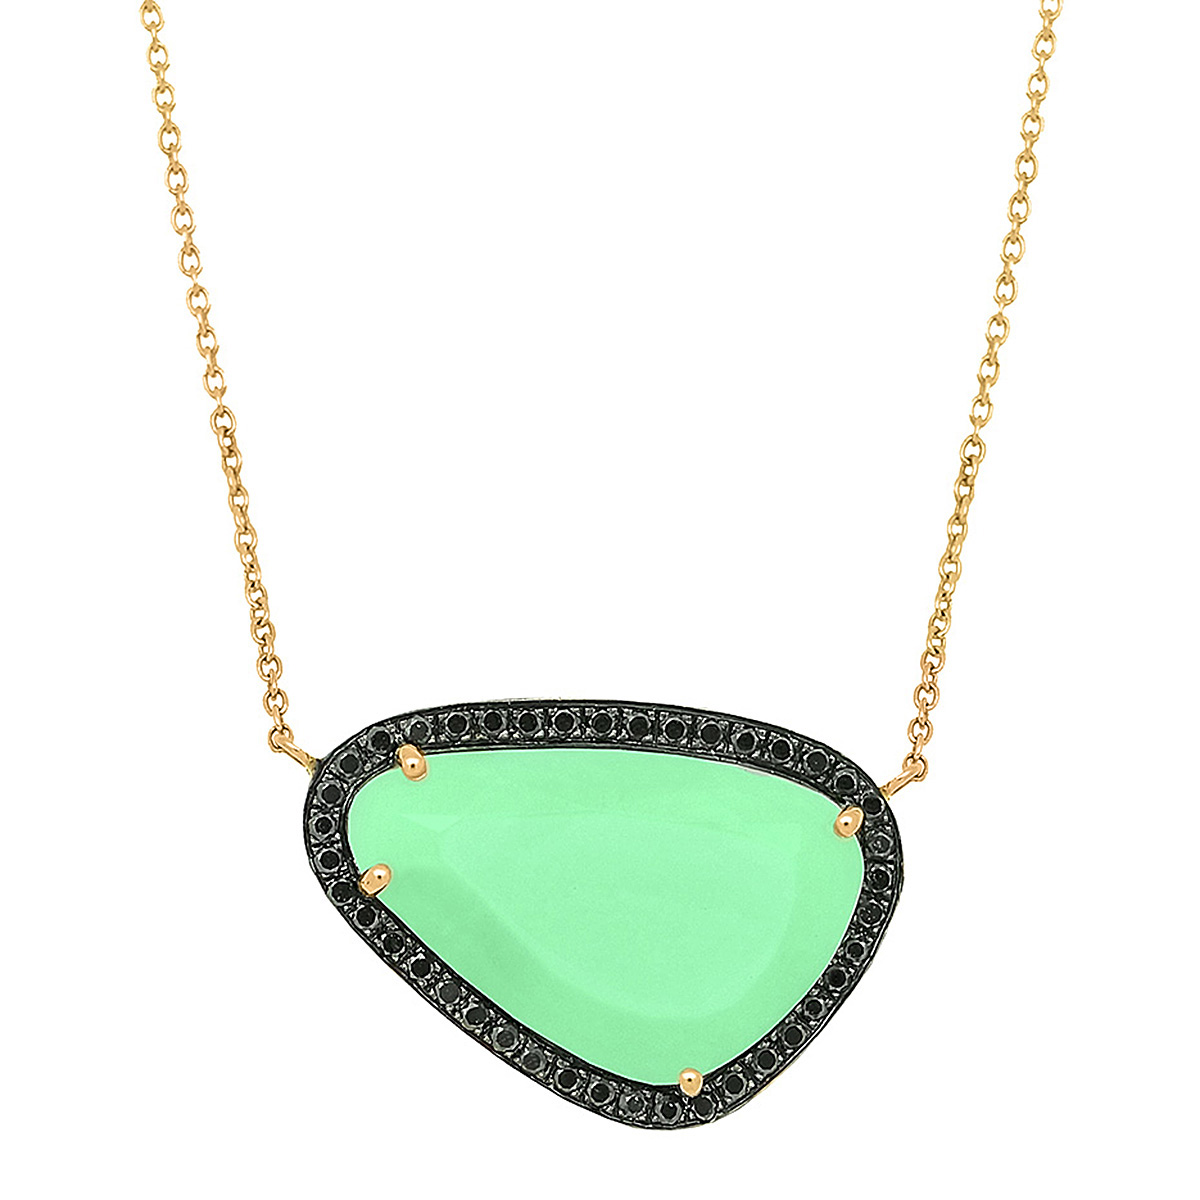 chrysoprase pin jewel jewelry pendant metalwork men rough necklace